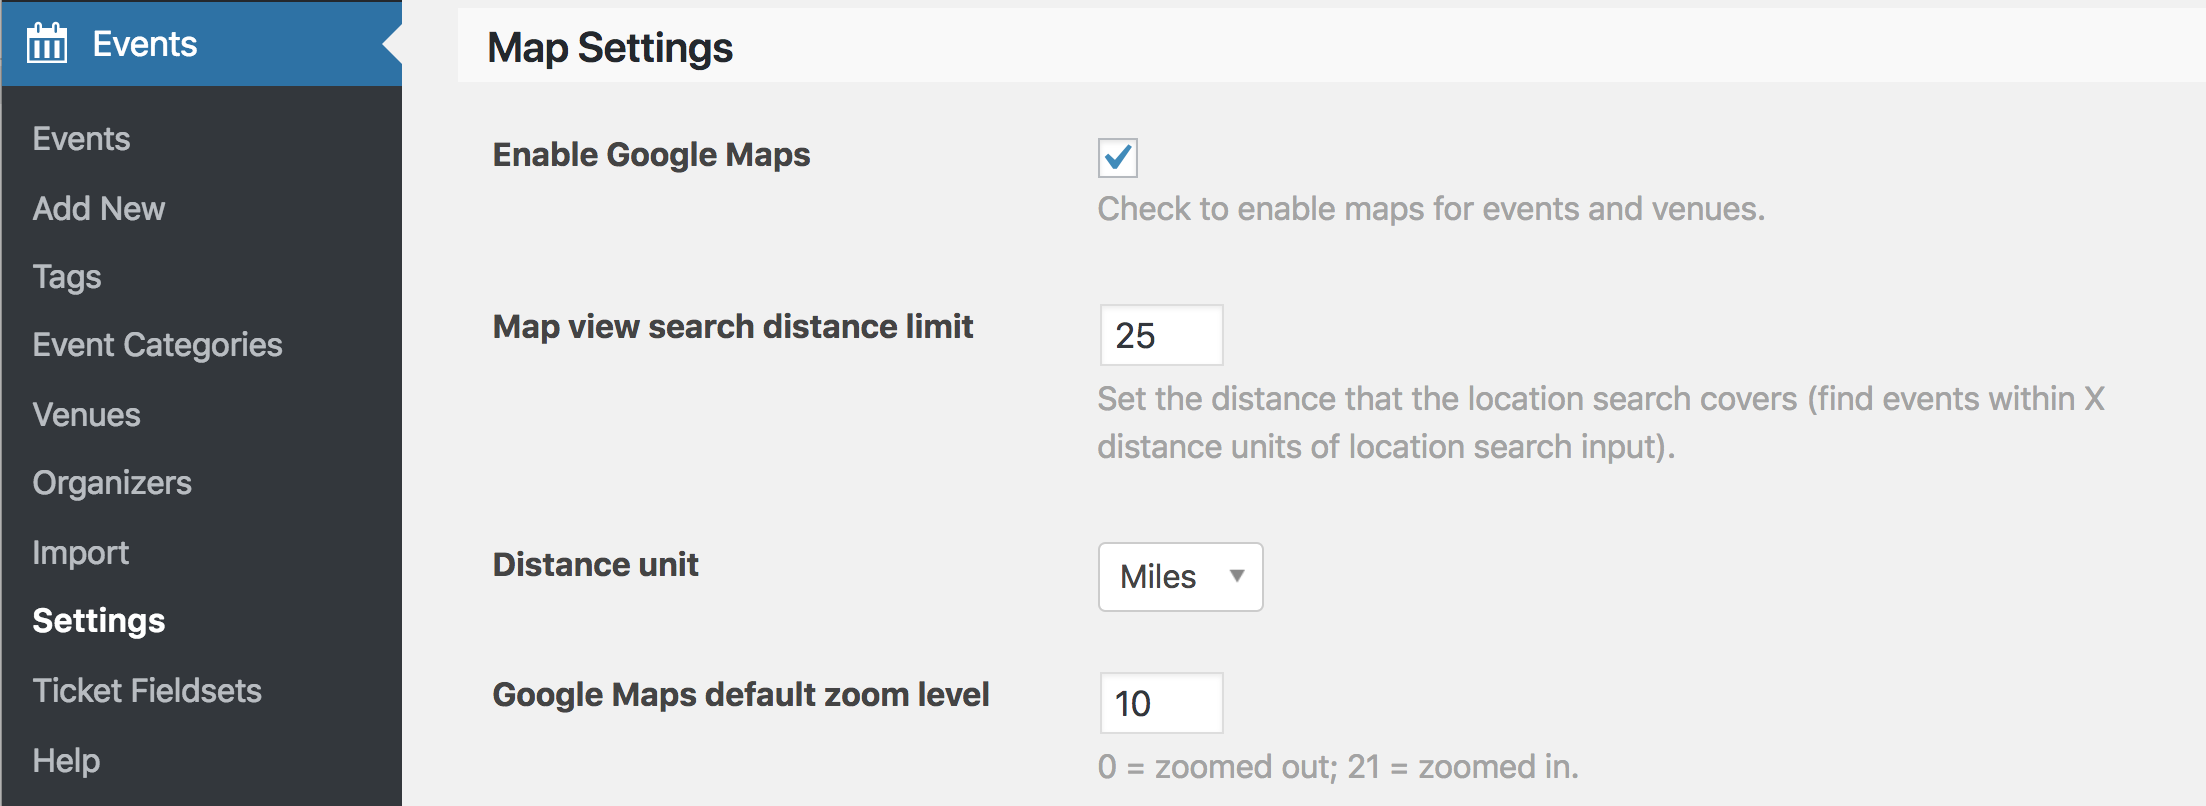 Screentshot: Events > Settings > Map Settings > Enable Google Maps